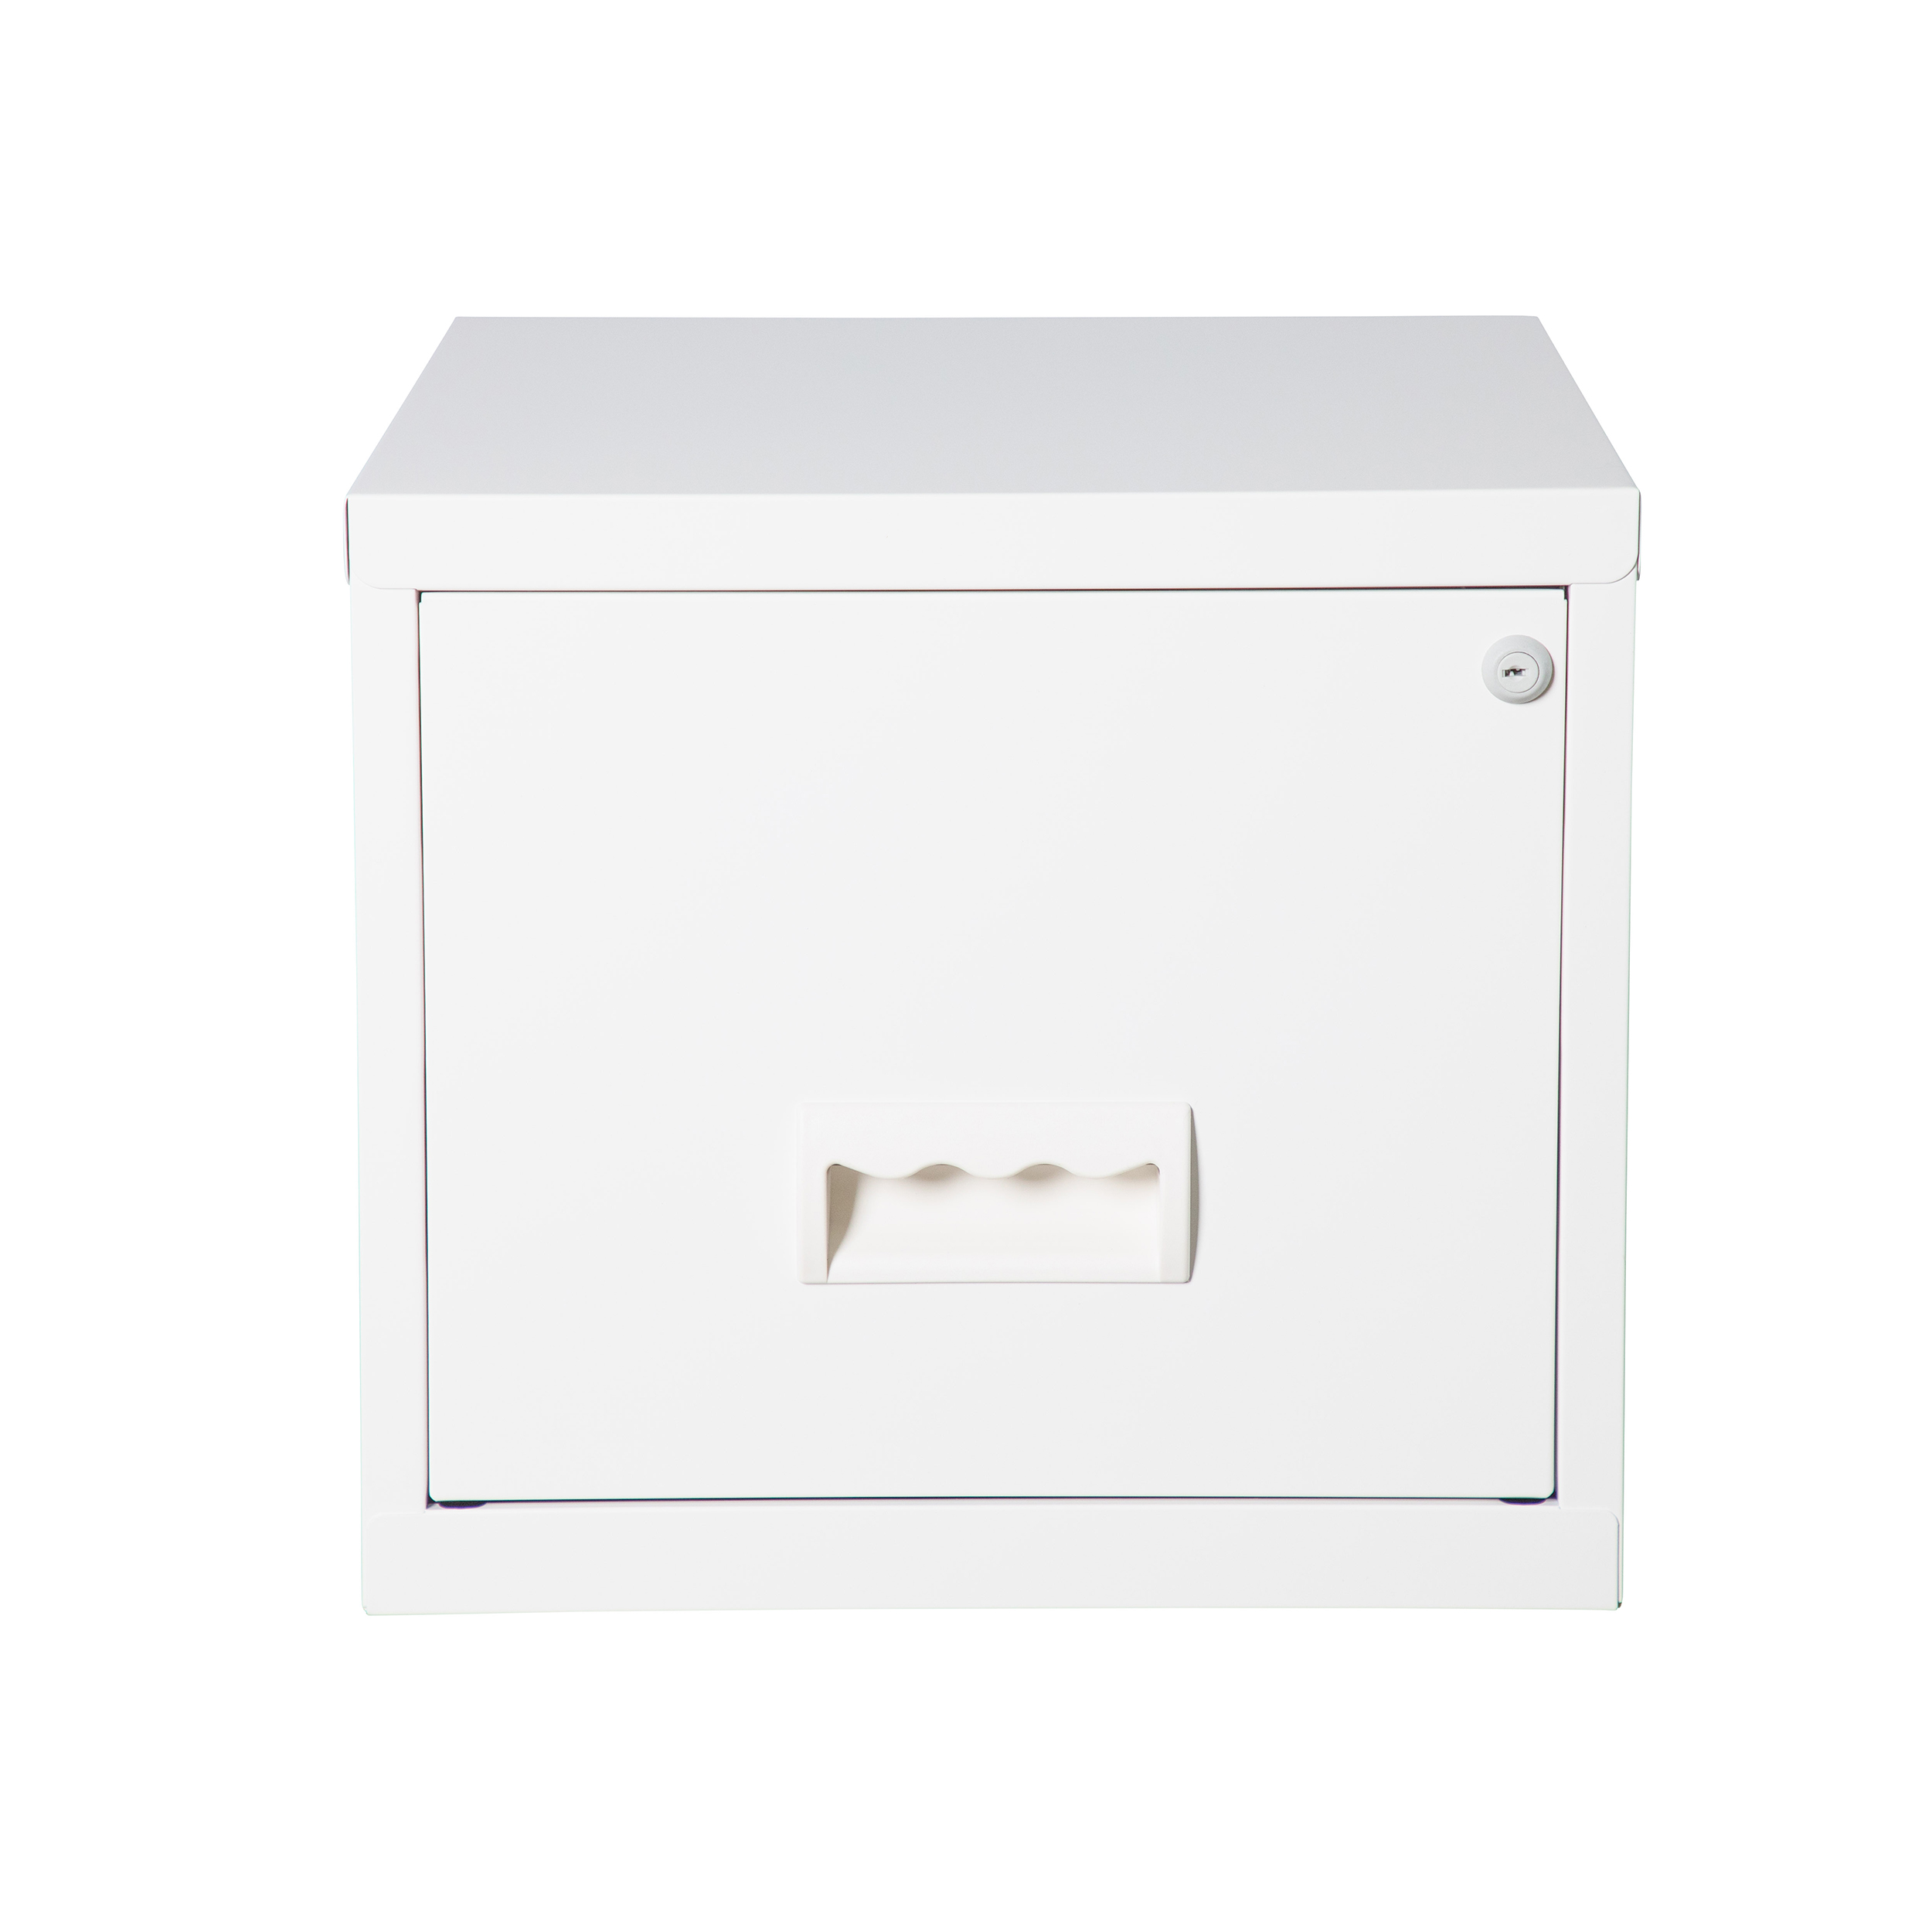 Filing cabinets or accesories Pierre Henry Maxi Filing Cabinet 1 Drawer A4 White Ref 099020